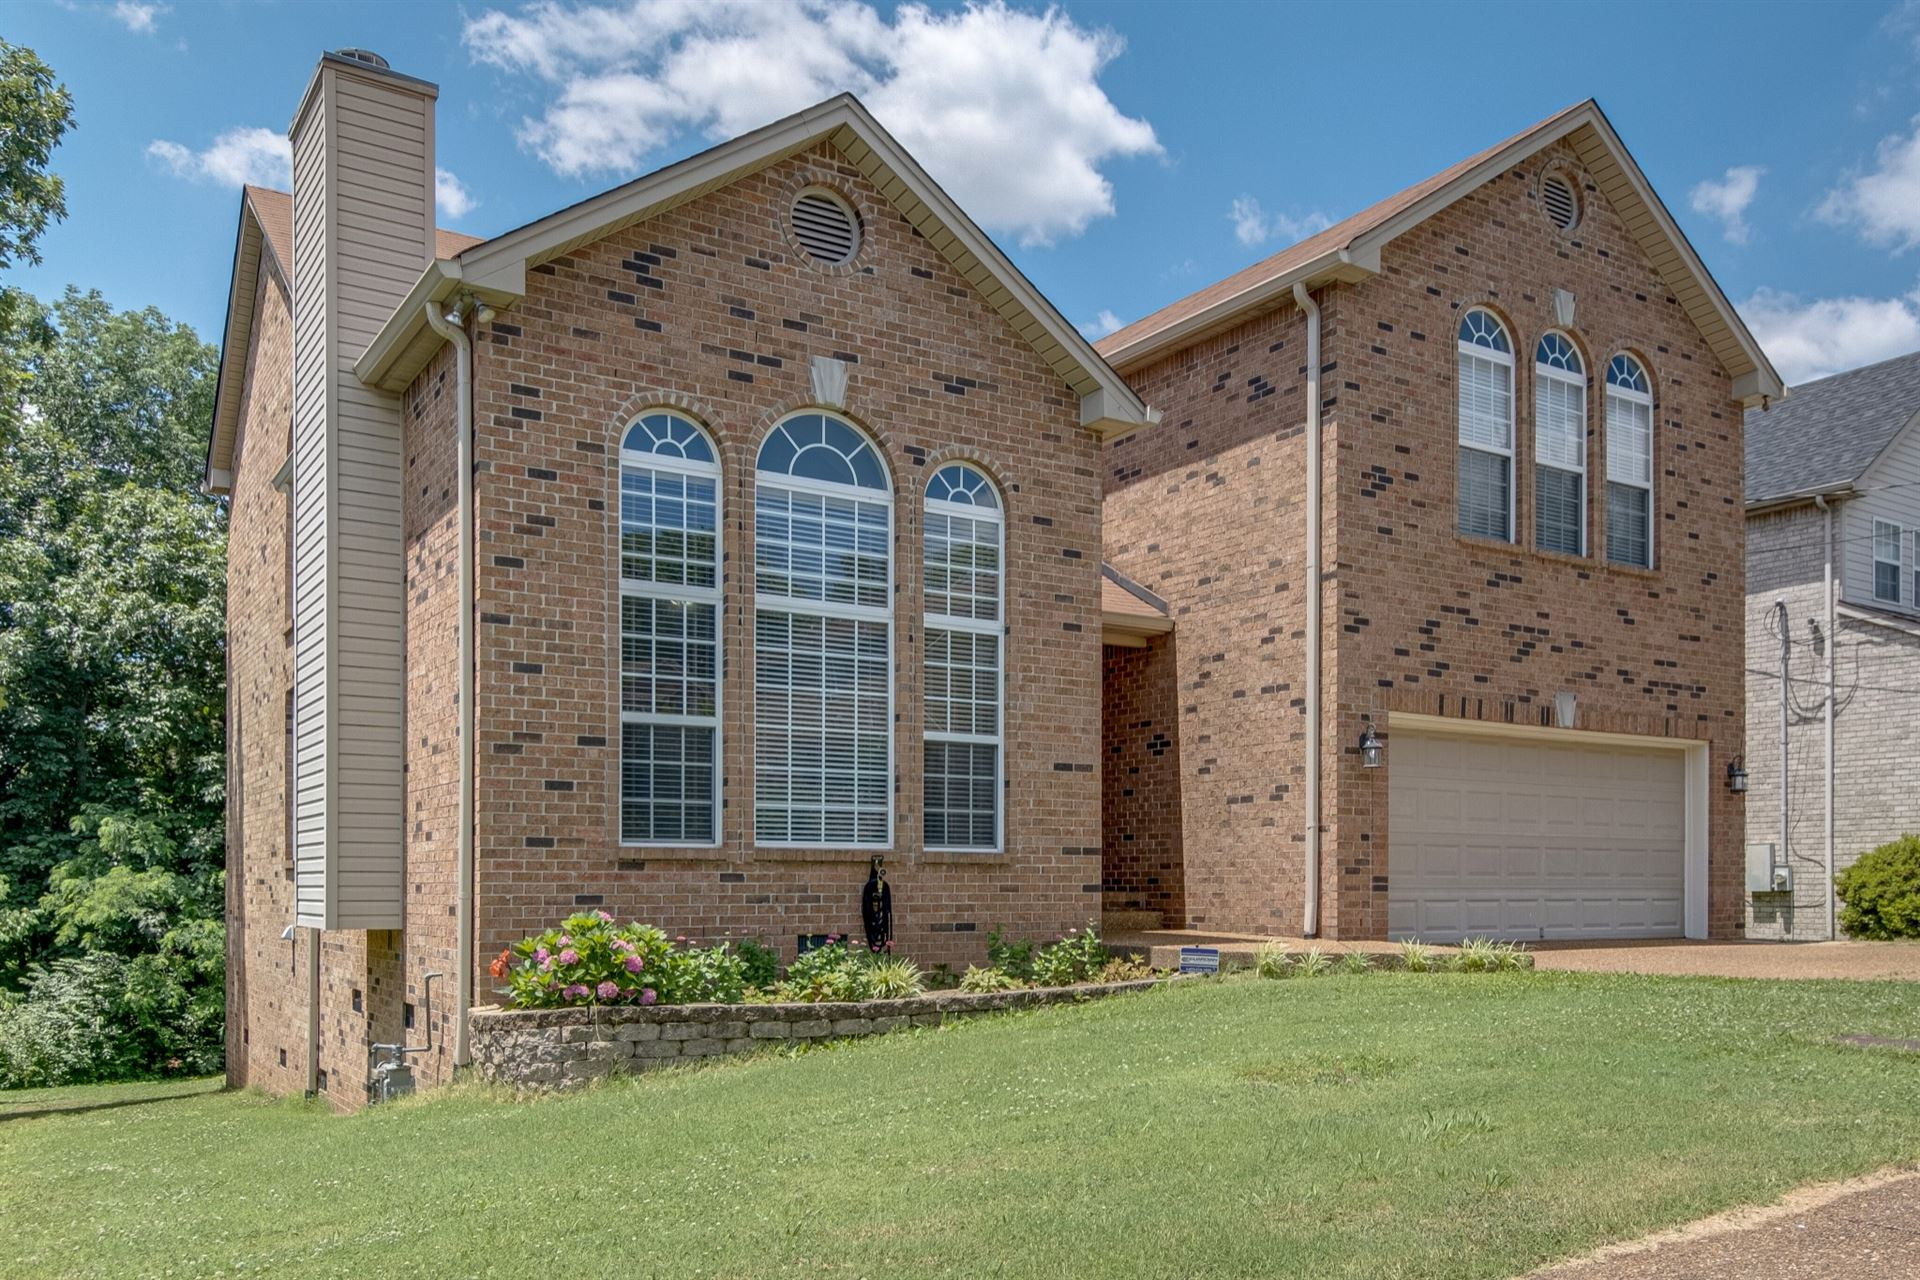 Photo of 5529 Craftwood Dr, Antioch, TN 37013 (MLS # 2264499)